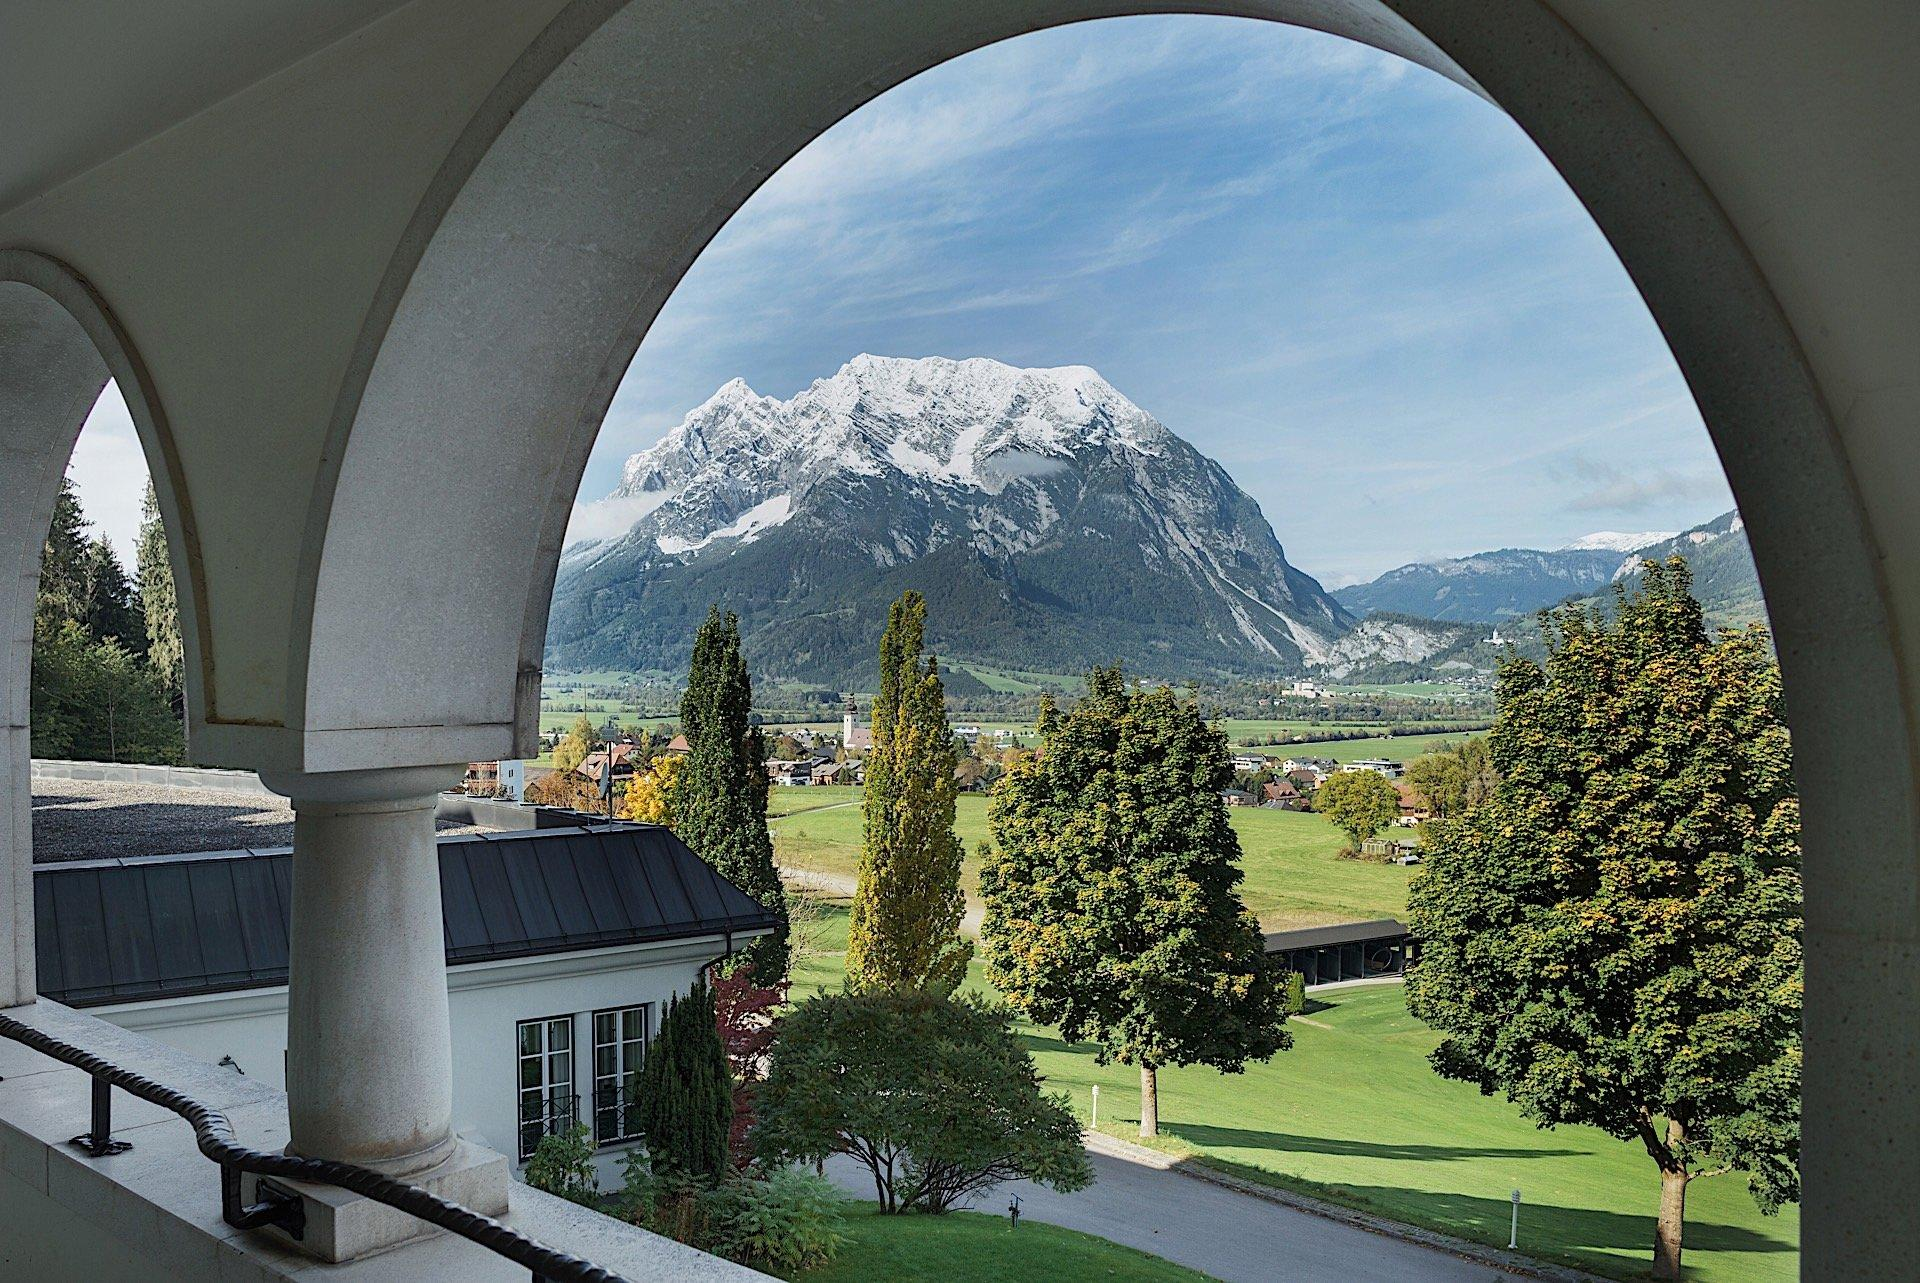 Views from Romantik Hotel Schloss Pichlarn, Austria